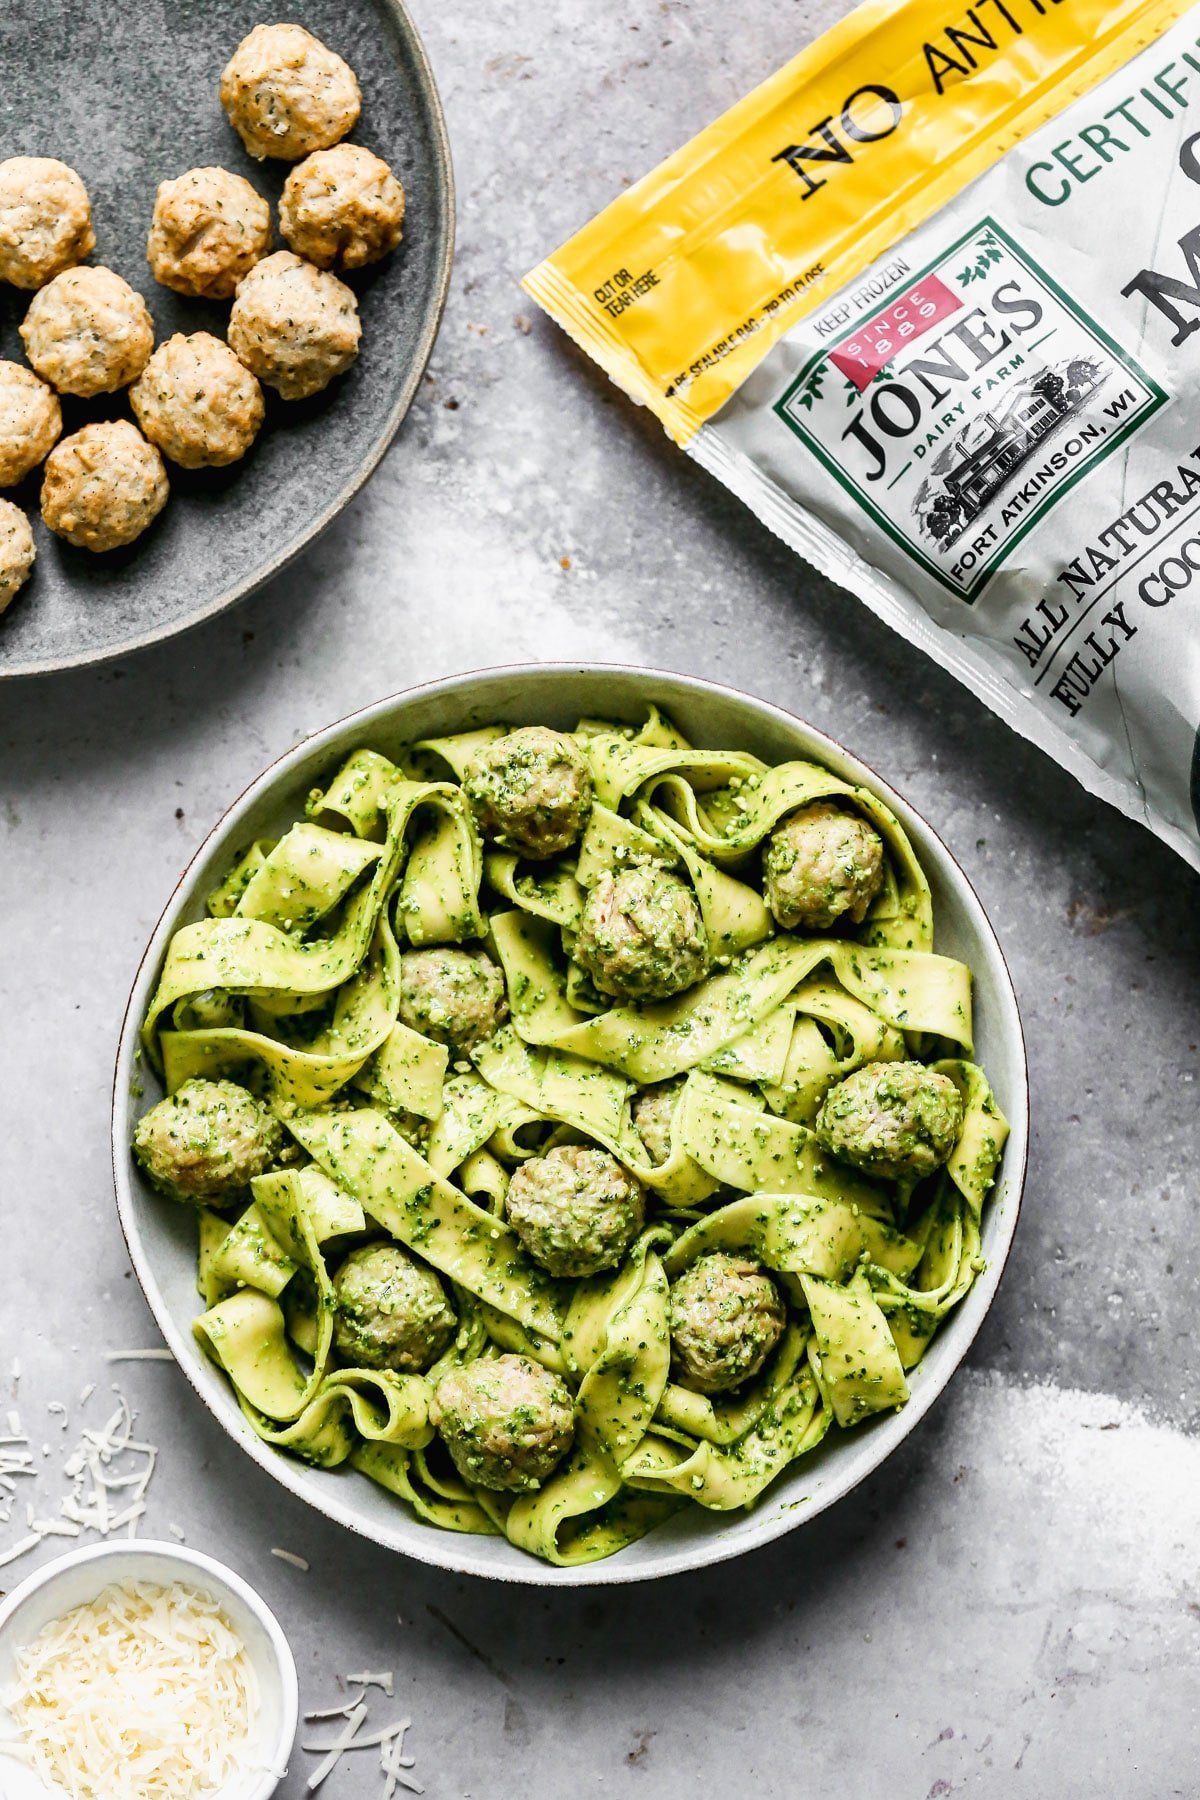 Twirly noodles tossed in a five-minute kale pesto, tender chicken meatballs, and plenty of nutty parmesan are the makings of our new favorite throw-it-together weeknight meal – Kale Pesto Pasta. Just because it's winter, doesn't mean we have to leave homemade pesto behind. Swapping out hearty wintery kale for a portion of the pesto brings a little seasonal aspect to our pesto and using crunchy almonds instead of pine nuts make this easy meal pocket-friendly as well.